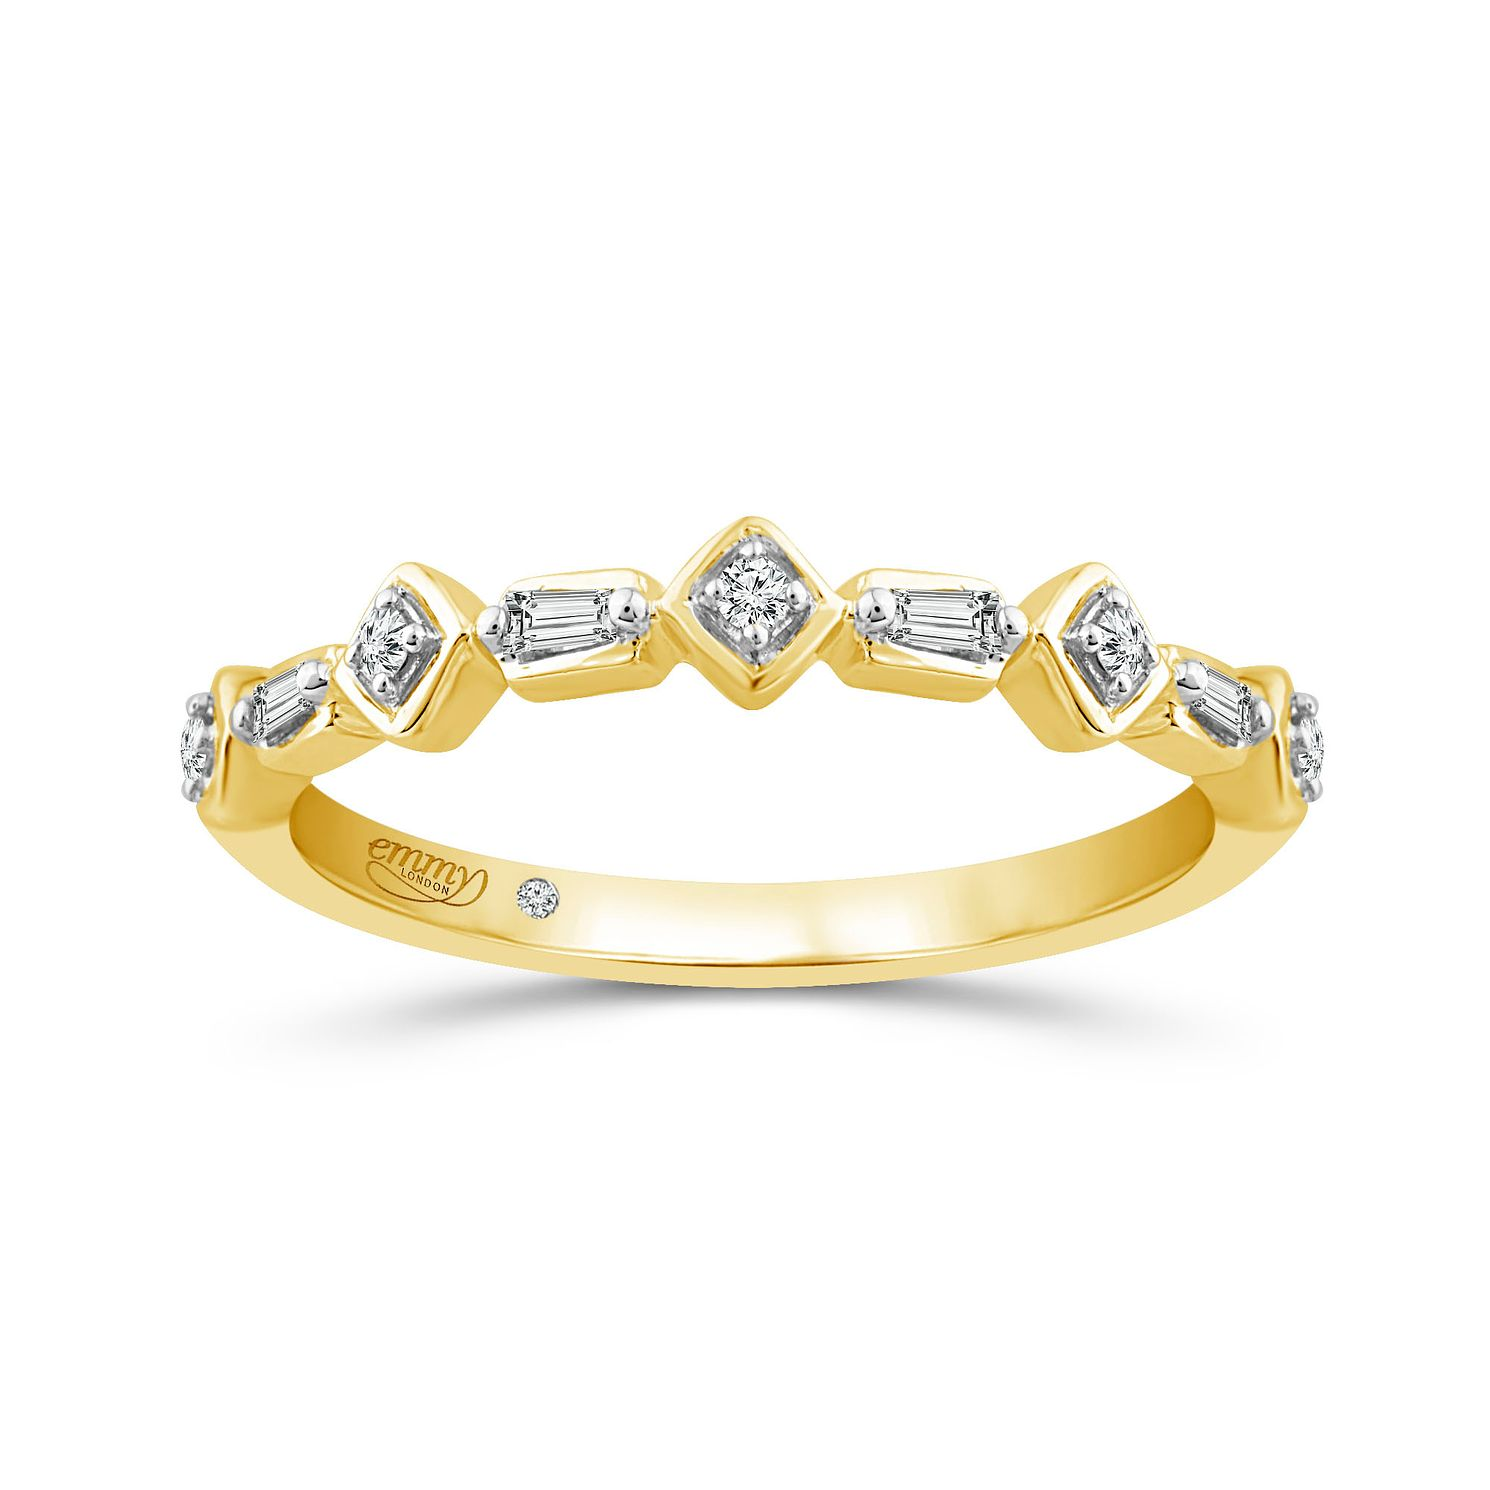 Emmy London 9Ct Yellow Gold Fancy 0.07Ct Diamond Band - Product number 8192901